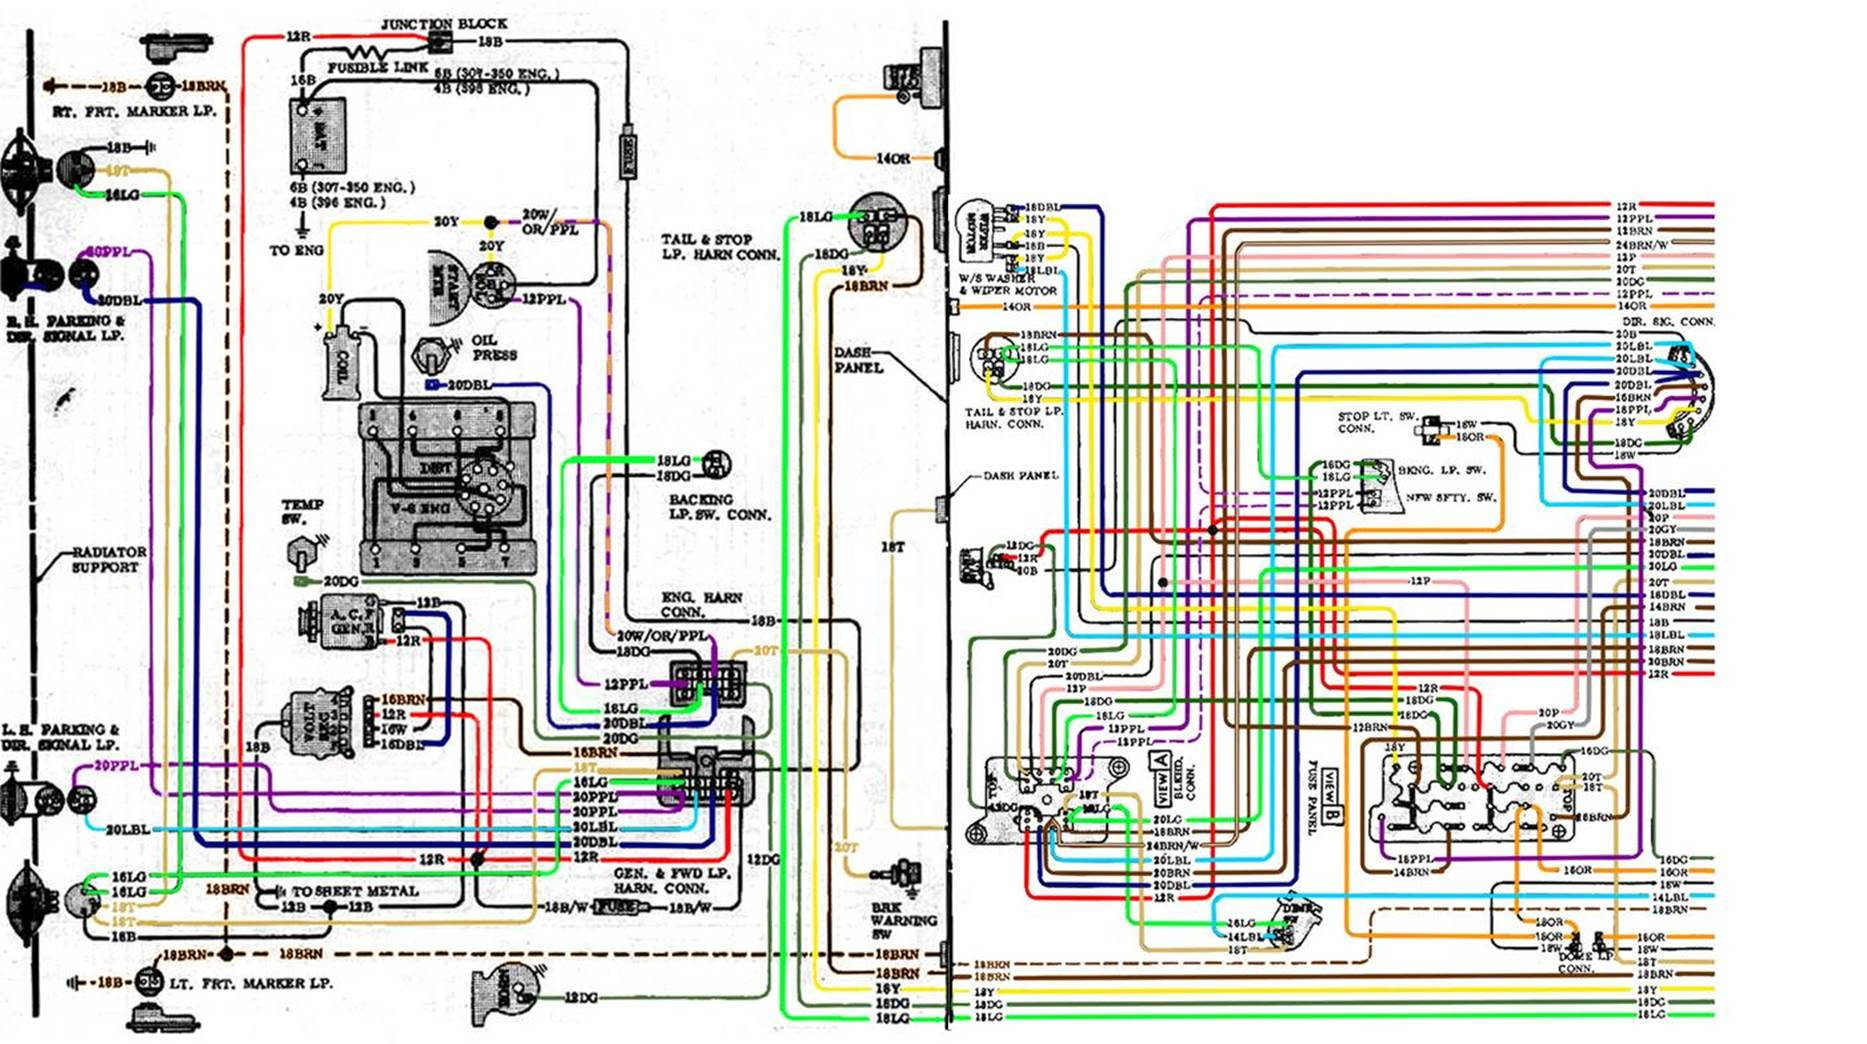 image002 67 72 chevy wiring diagram 69 chevelle engine wiring diagram at et-consult.org